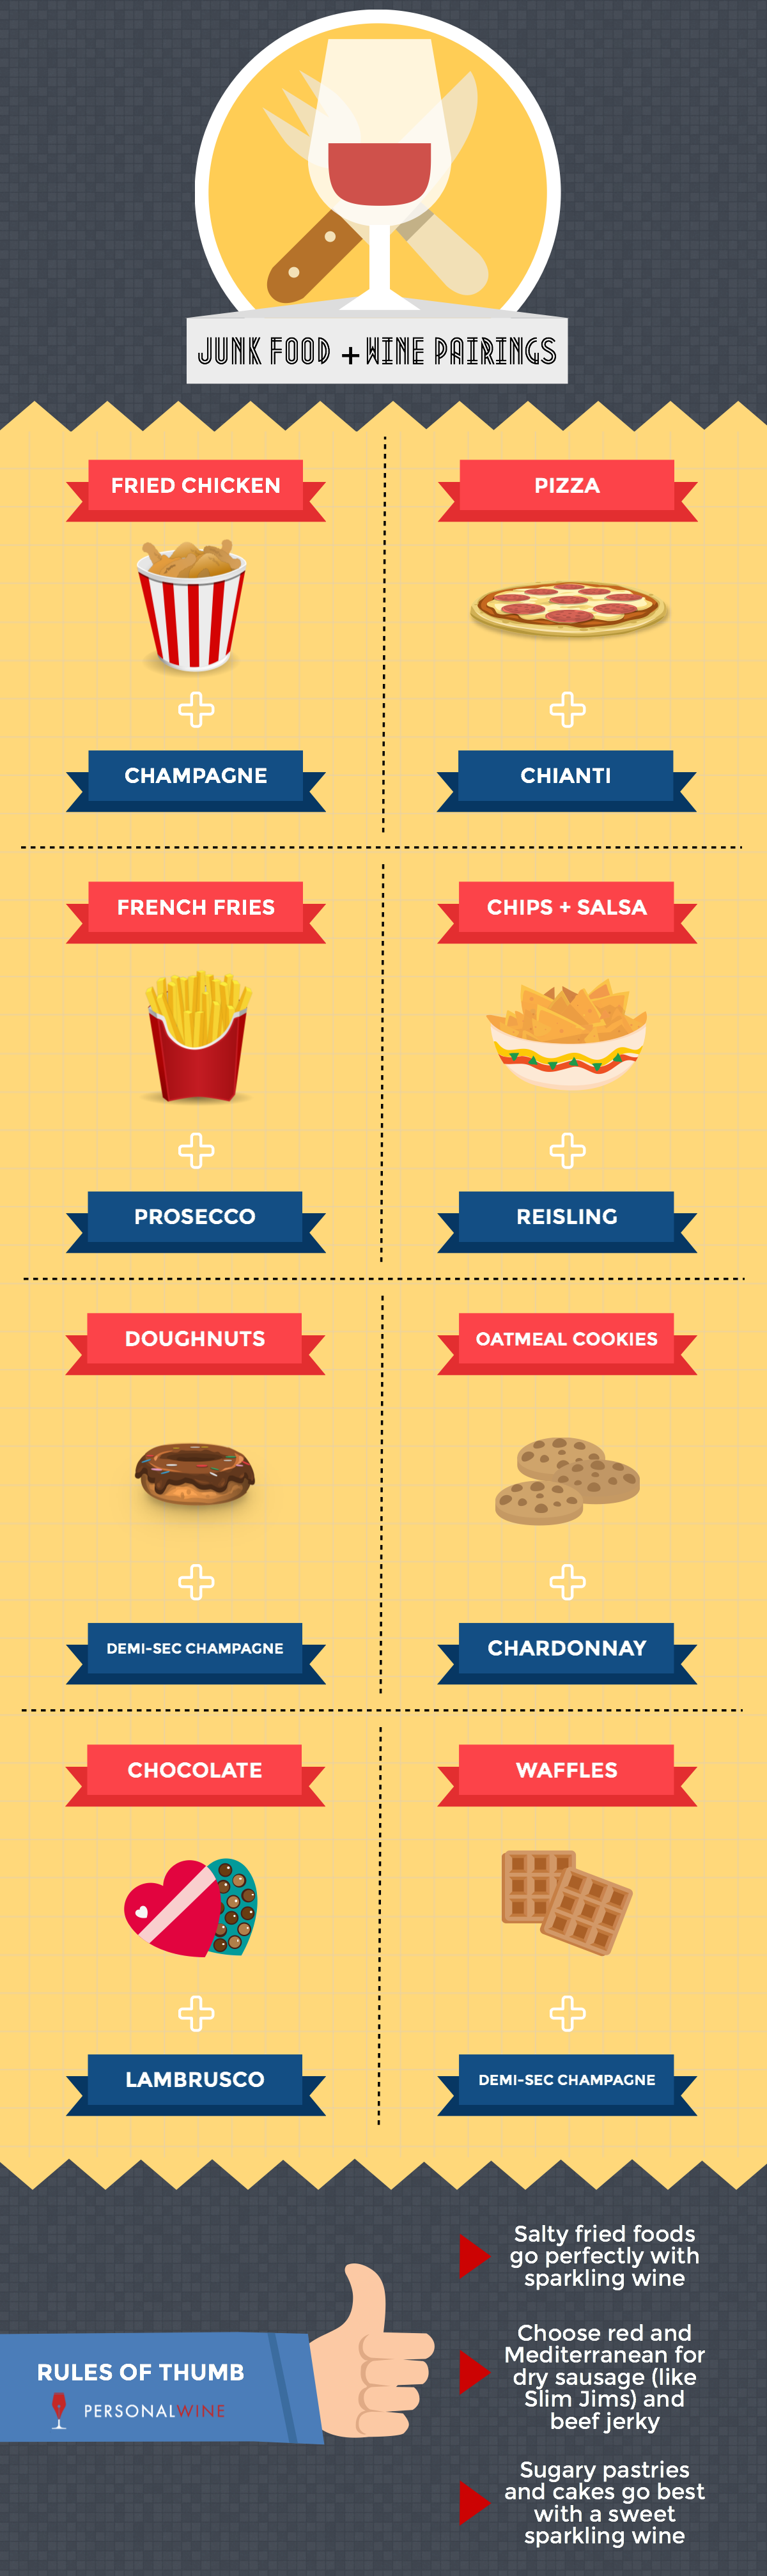 junk-food-and-wine-pairings